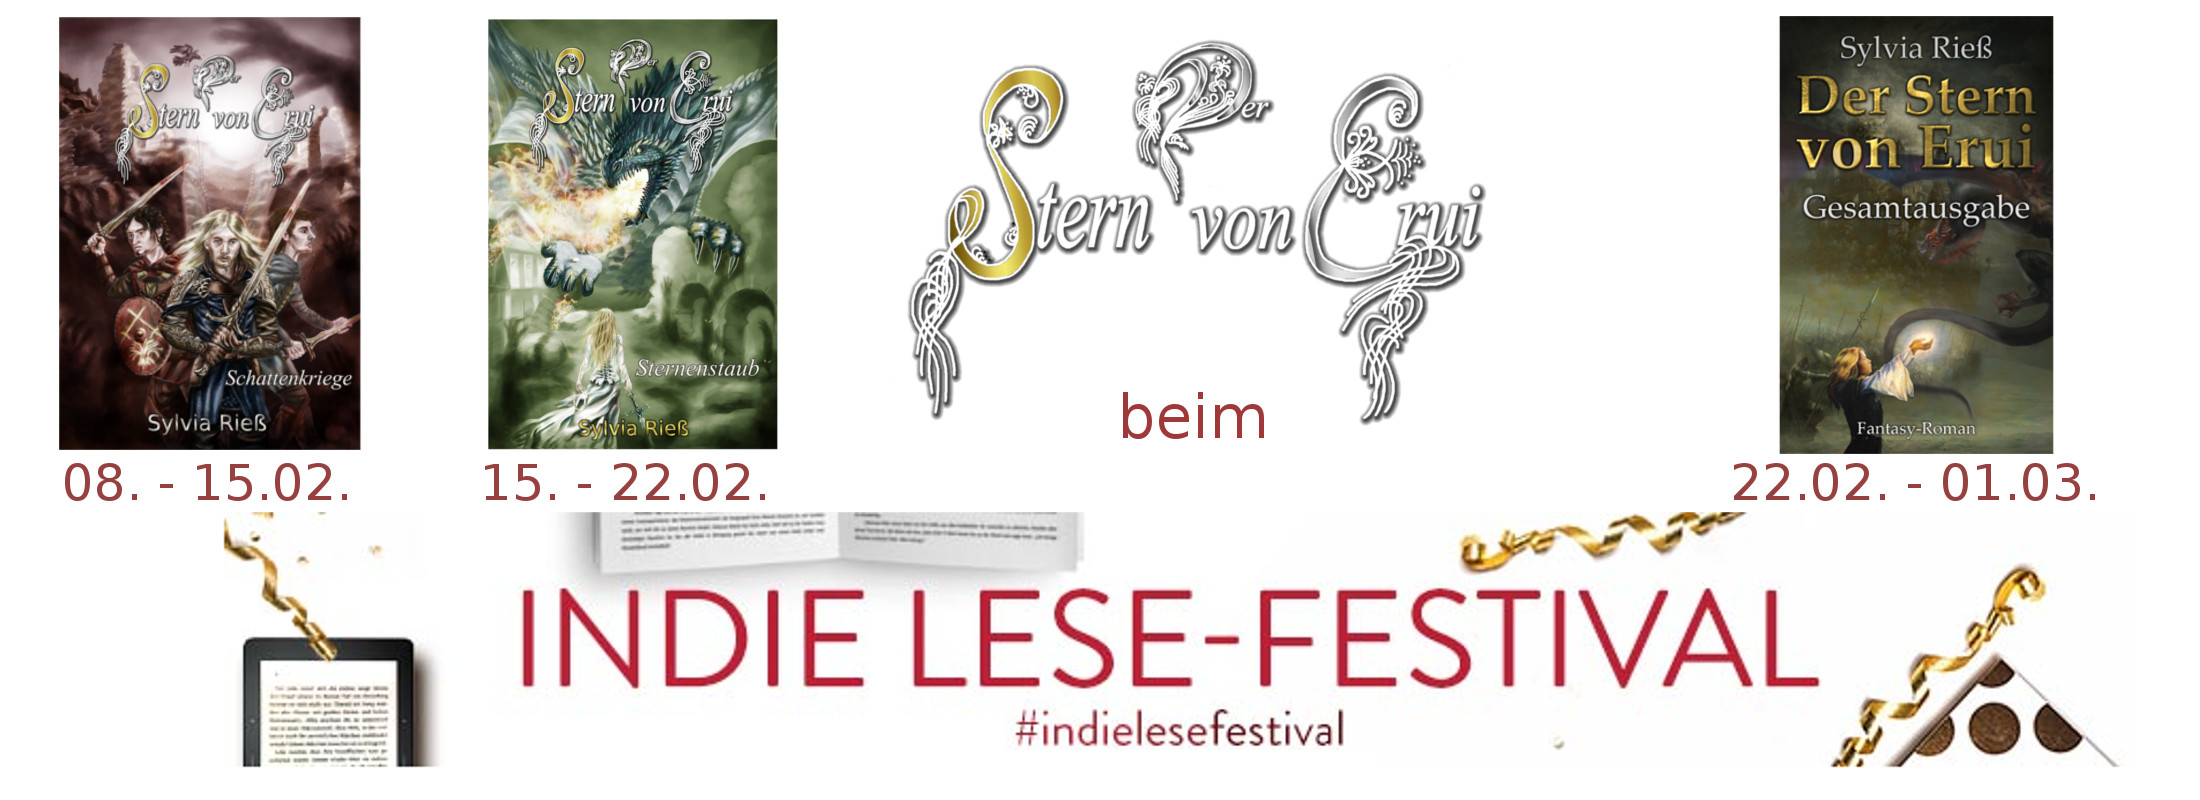 Indielesefestival